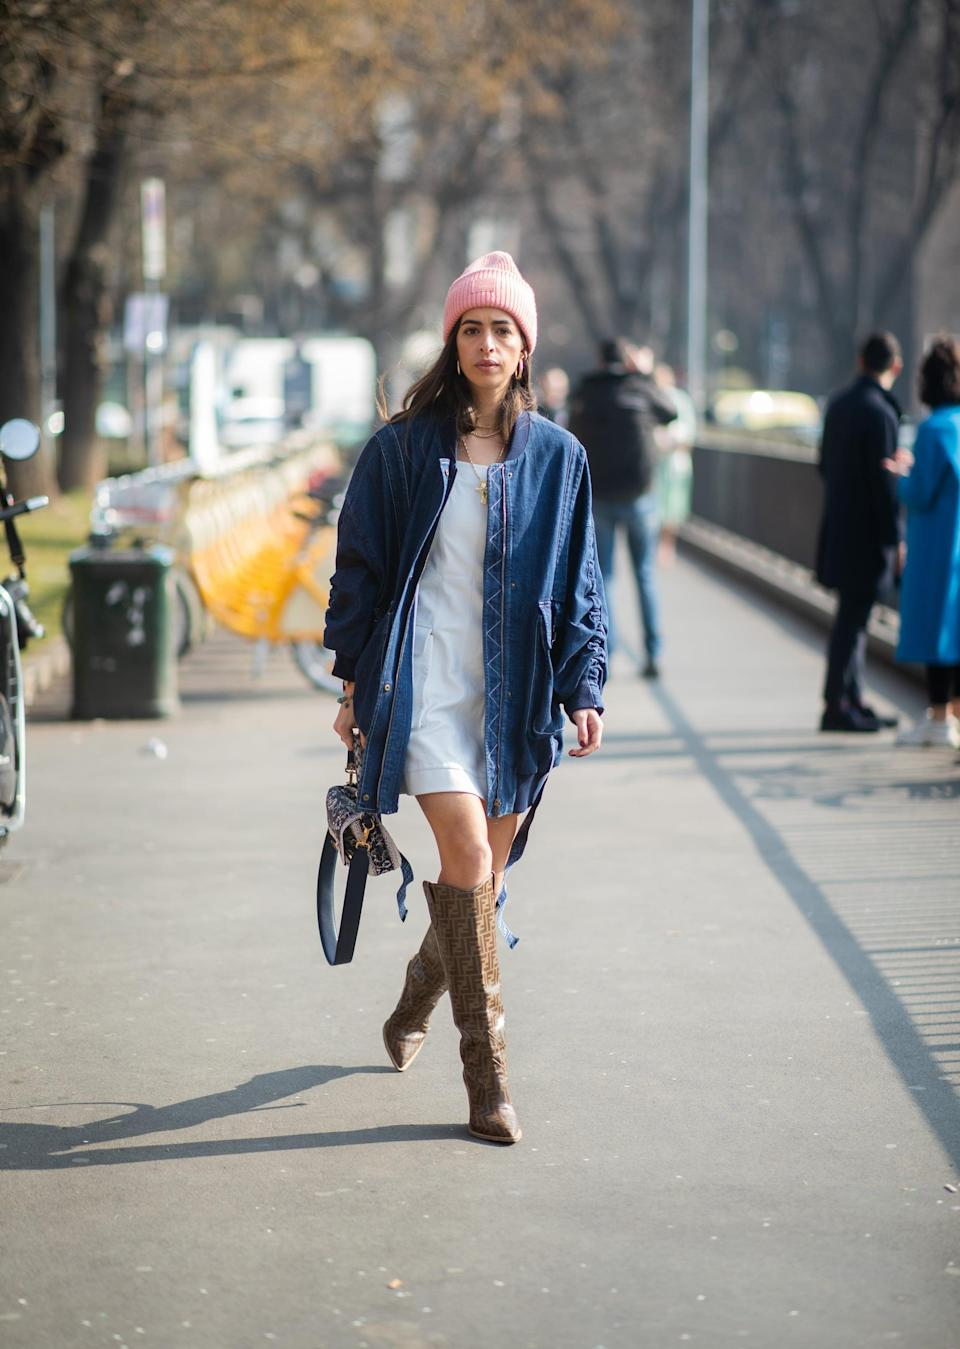 <p>If you're dealing with that in-between weather, a beanie is the perfect way to warm up your look without layering up too heavily. Simply pair it with a dress and boots, then top it all with a jacket or coat to pull it together. </p>